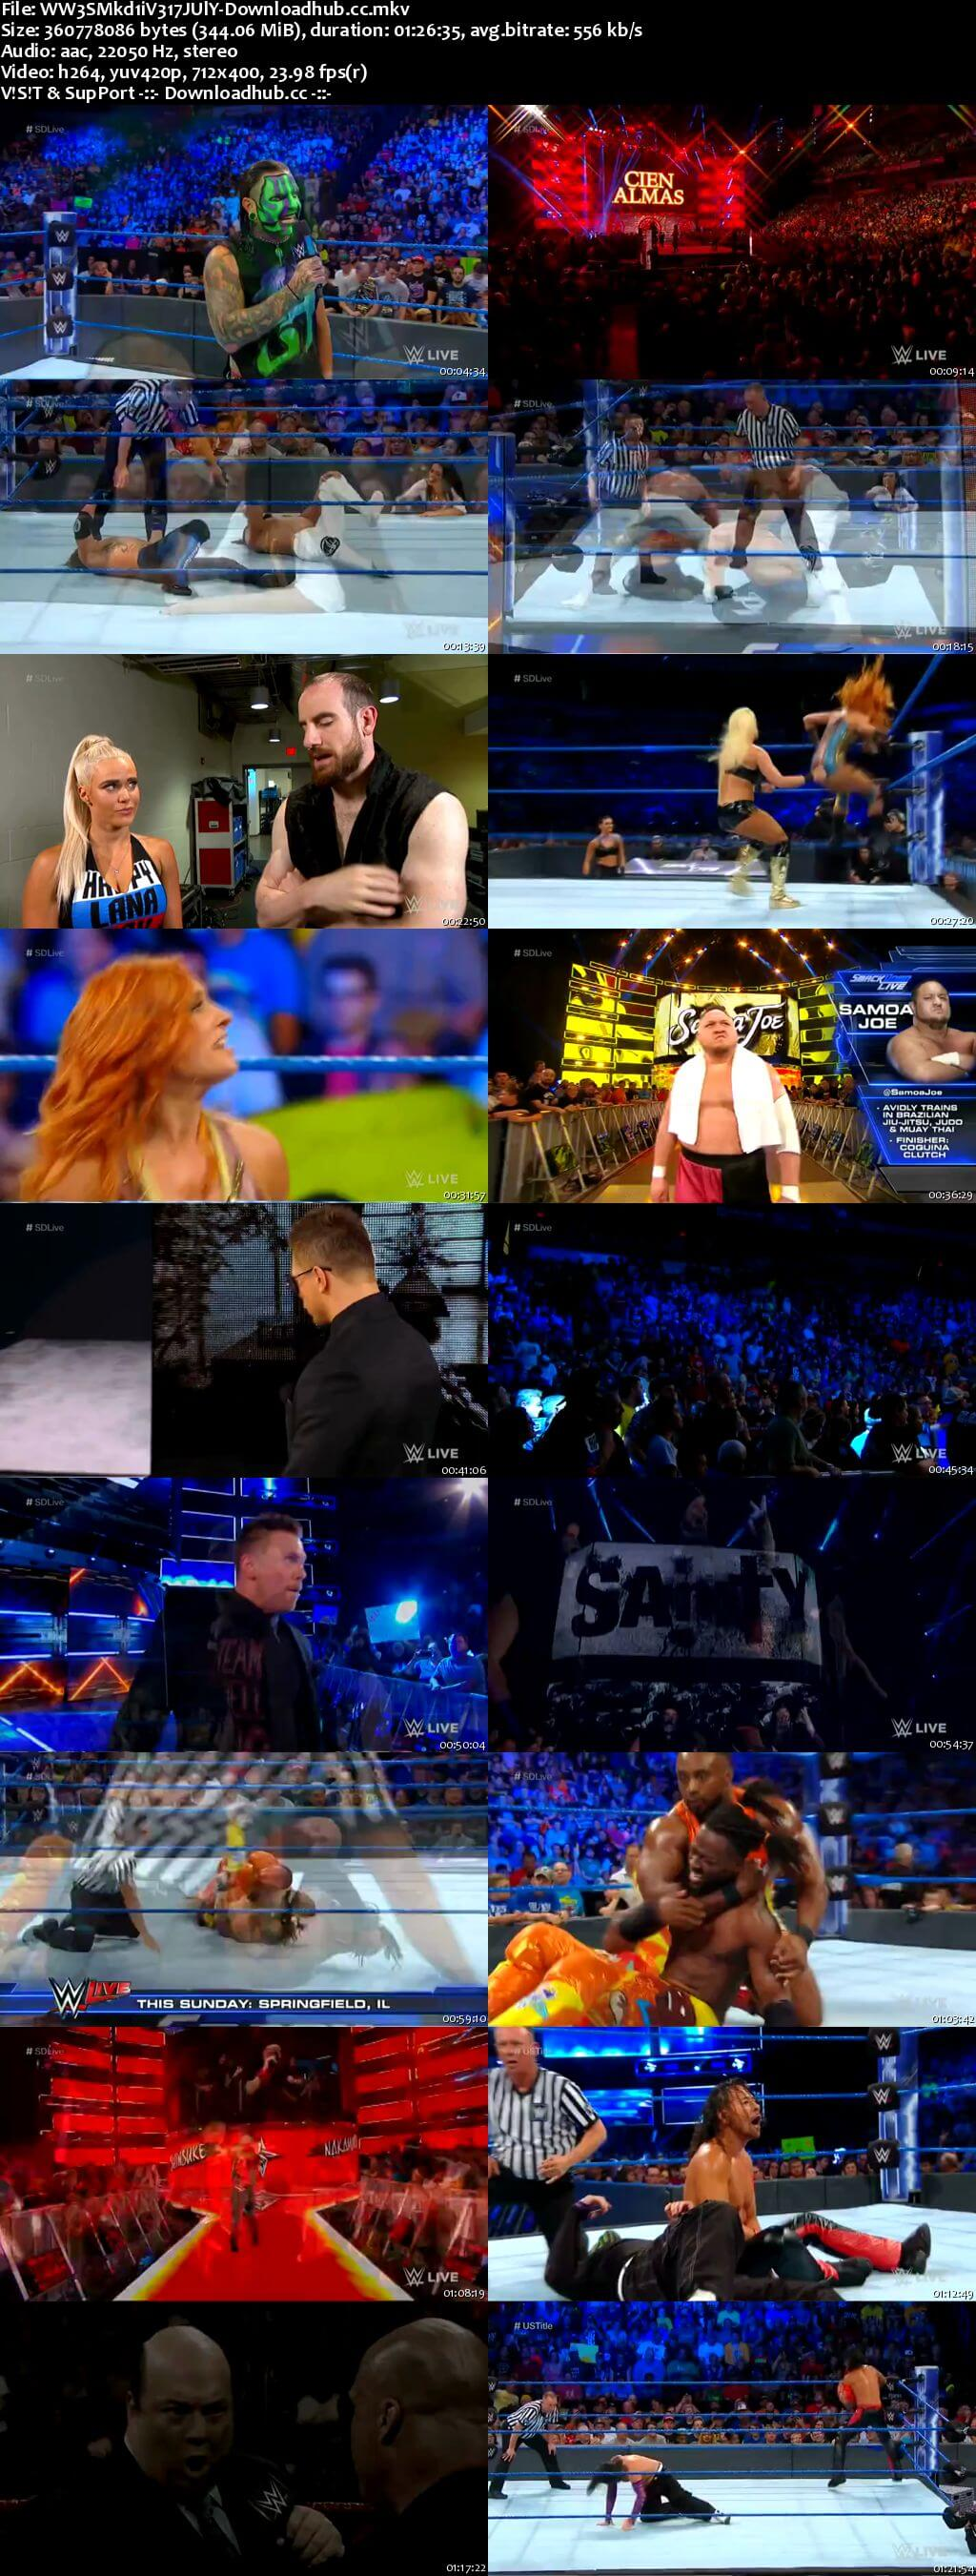 WWE Smackdown Live 17 July 2018 480p HDTV Download